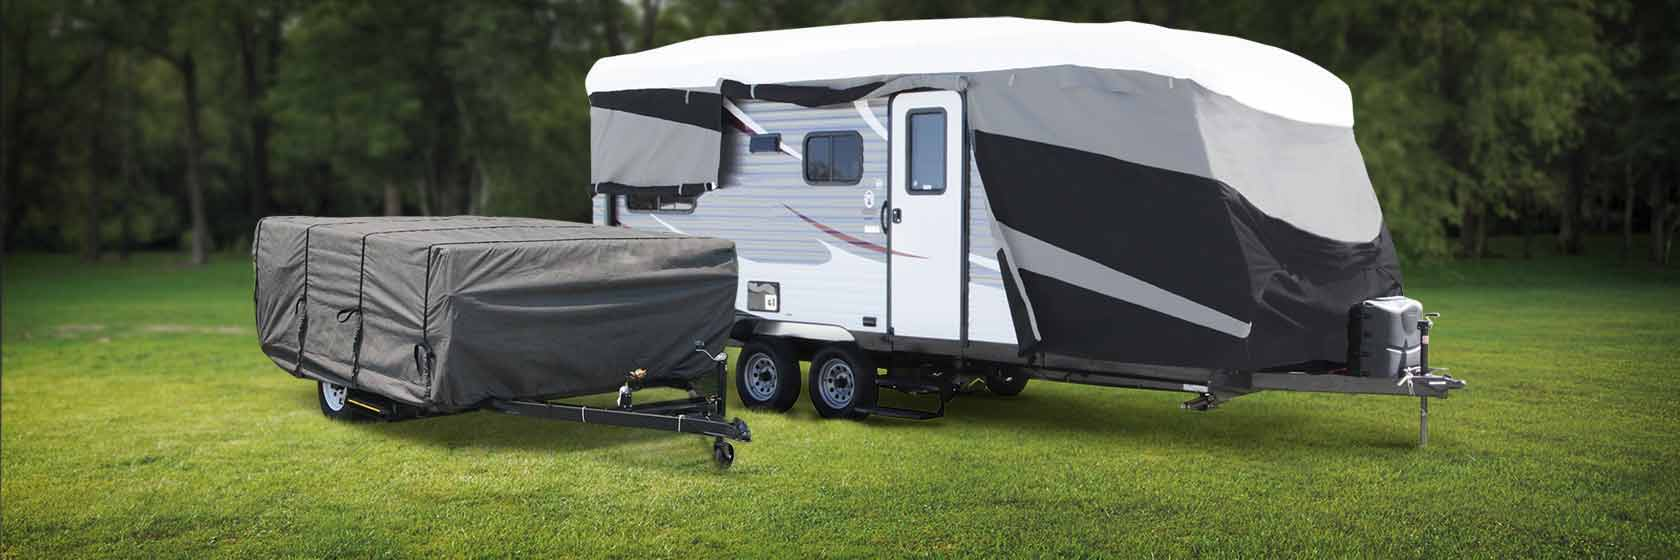 hight resolution of shop our vast selection of rv covers at low prices